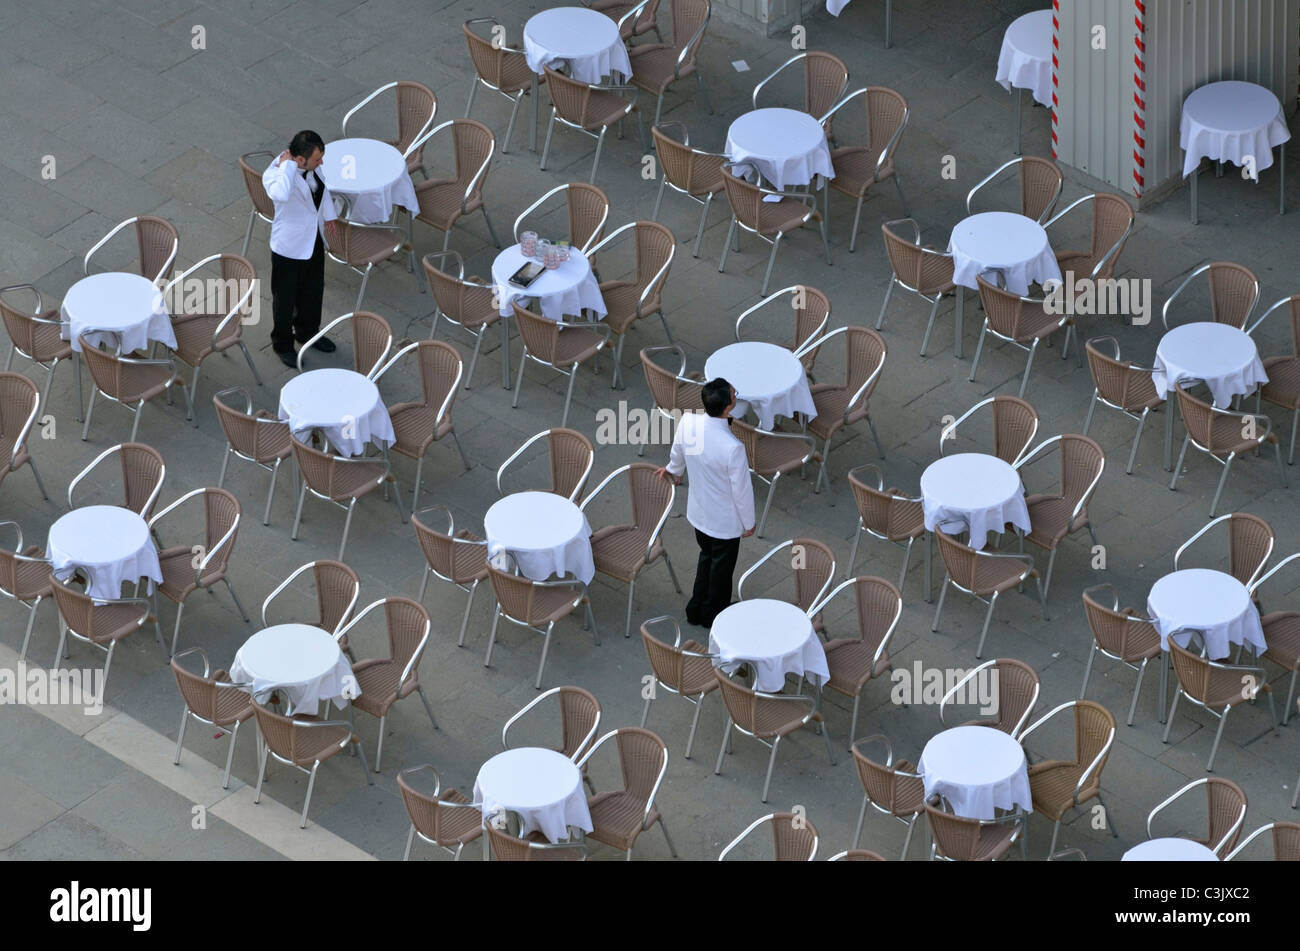 Waiters at empty cafe - Stock Image